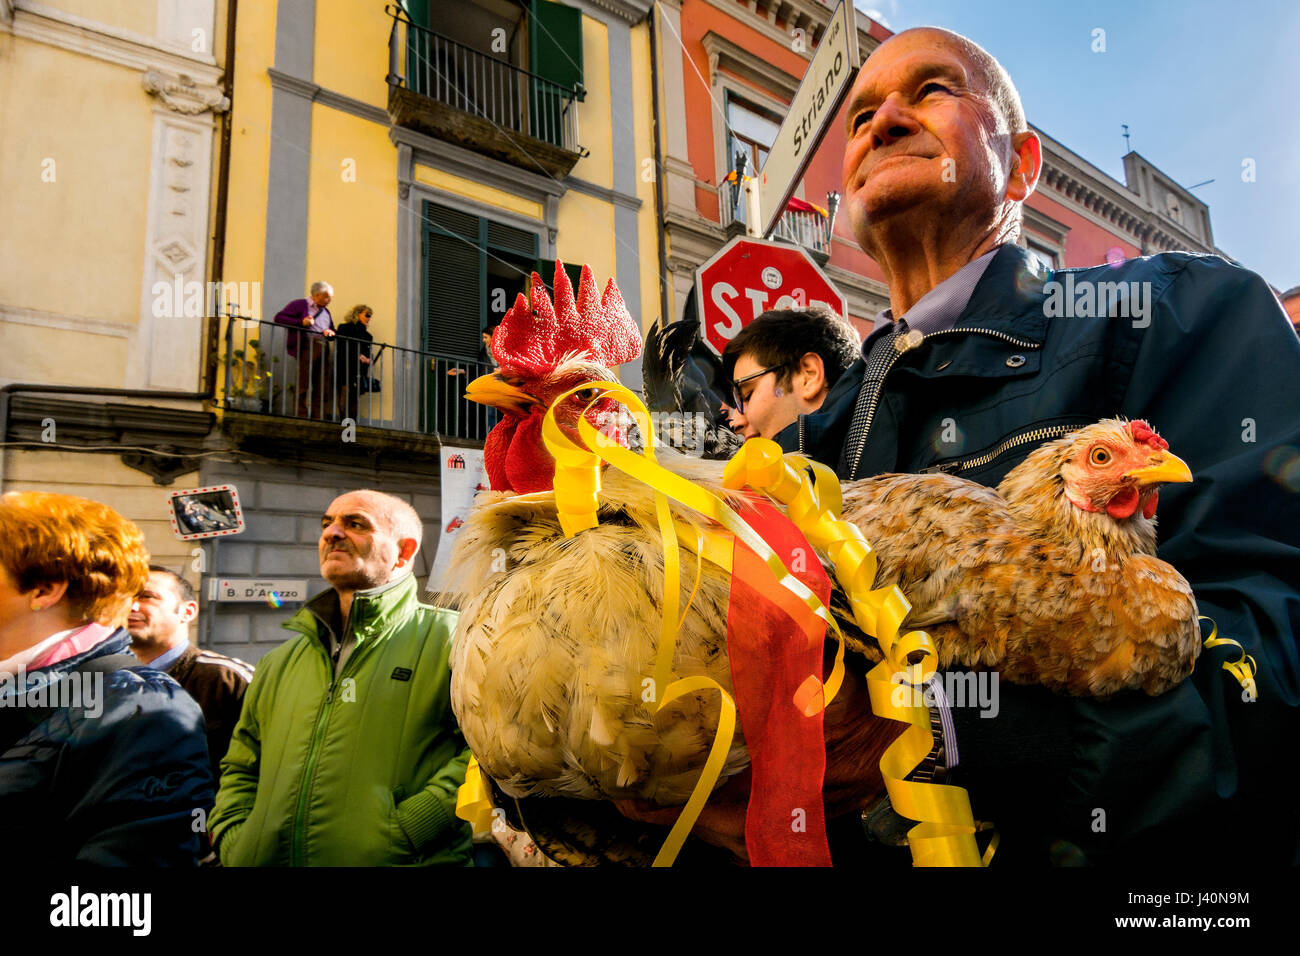 Madonna of the Hens, popular festival of the town of Pagani, Salerno, Italy. Stock Photo